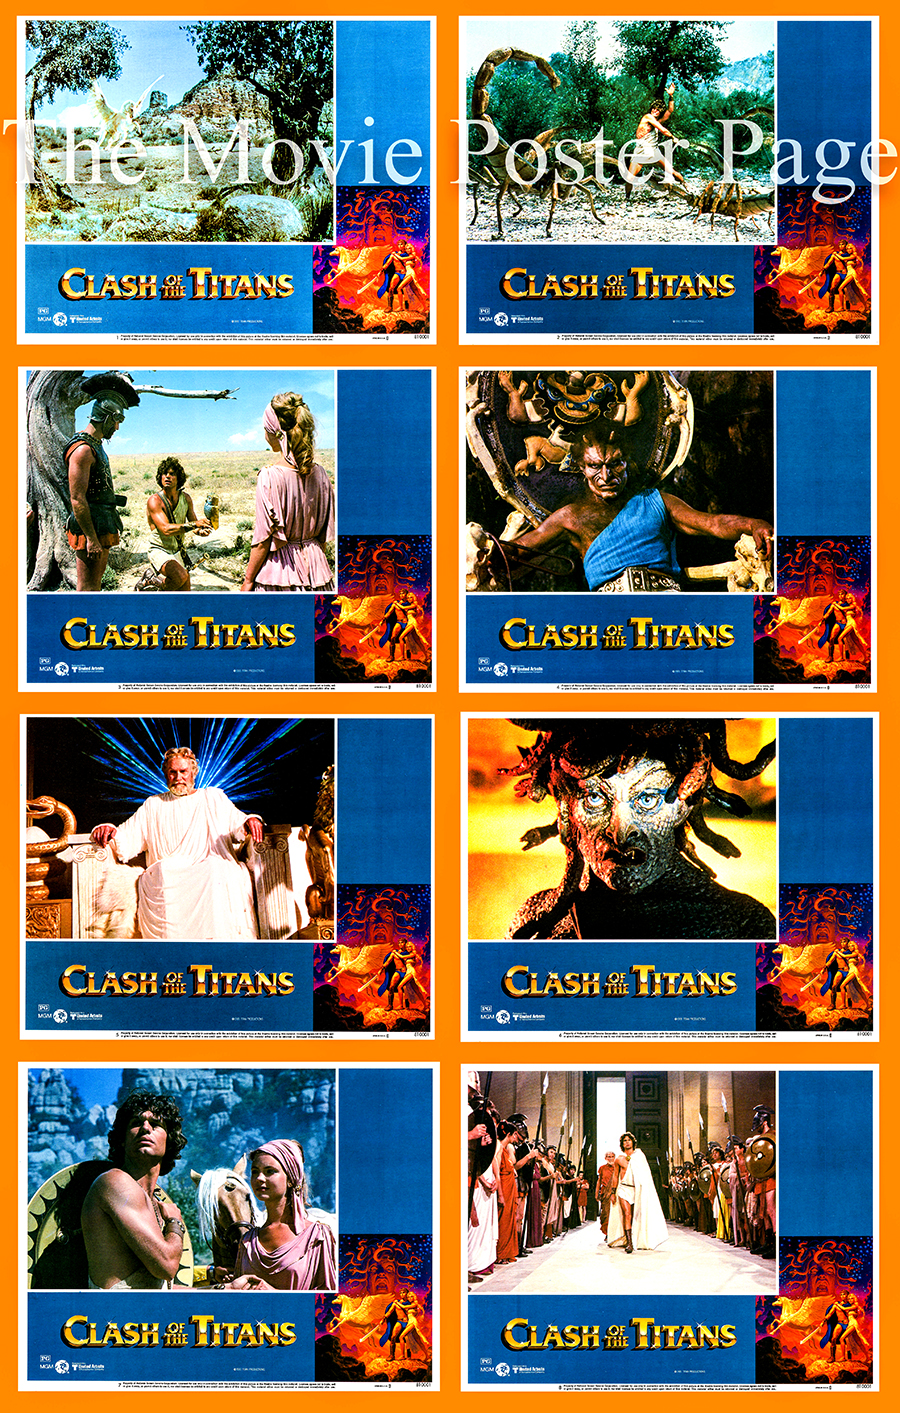 Pictured is a US lobby card set for the 1981 Desmond Davis film Clash of the Titans starring Laurence Olivier.